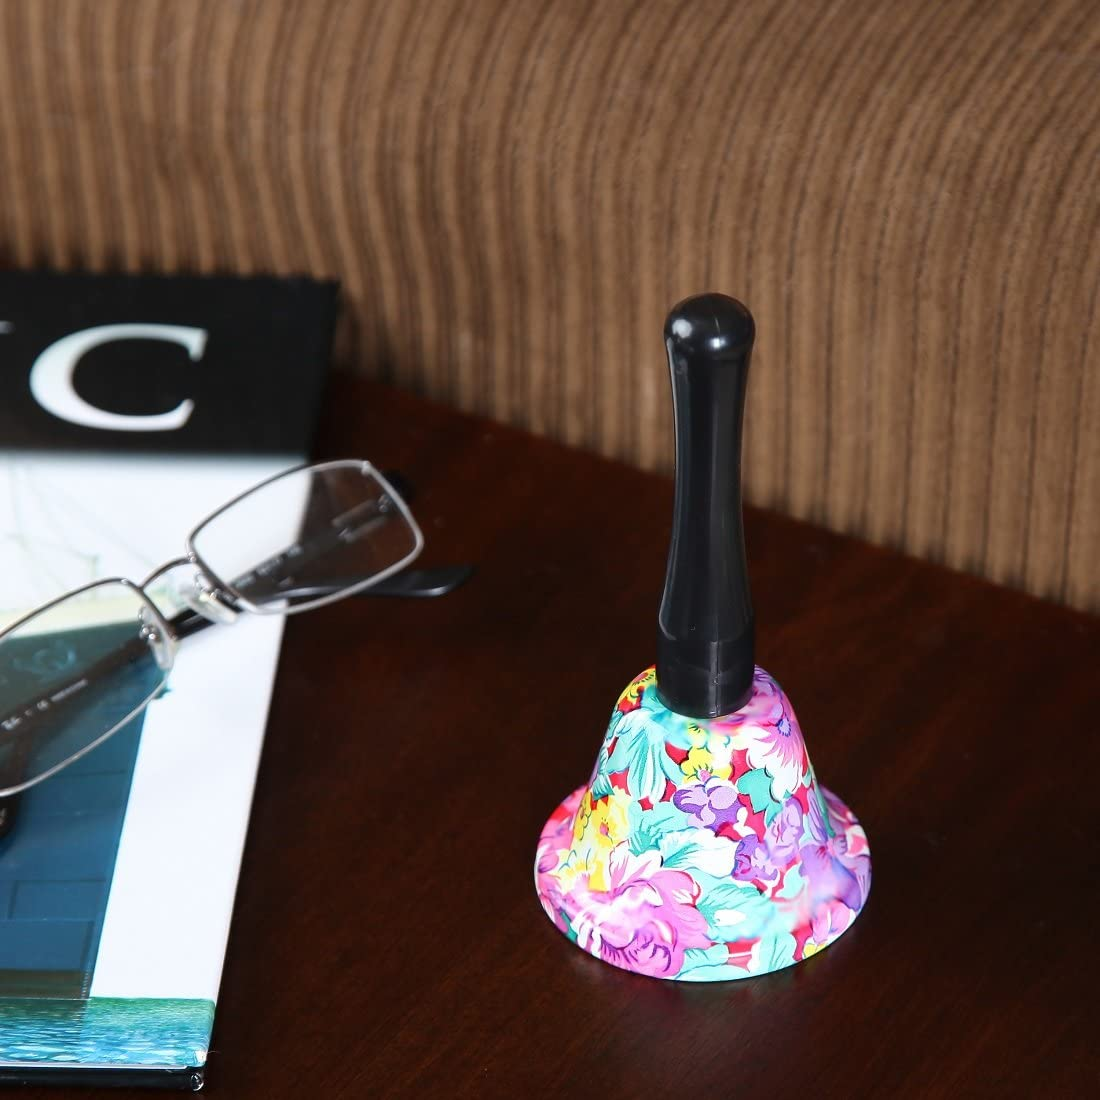 Floral call bell